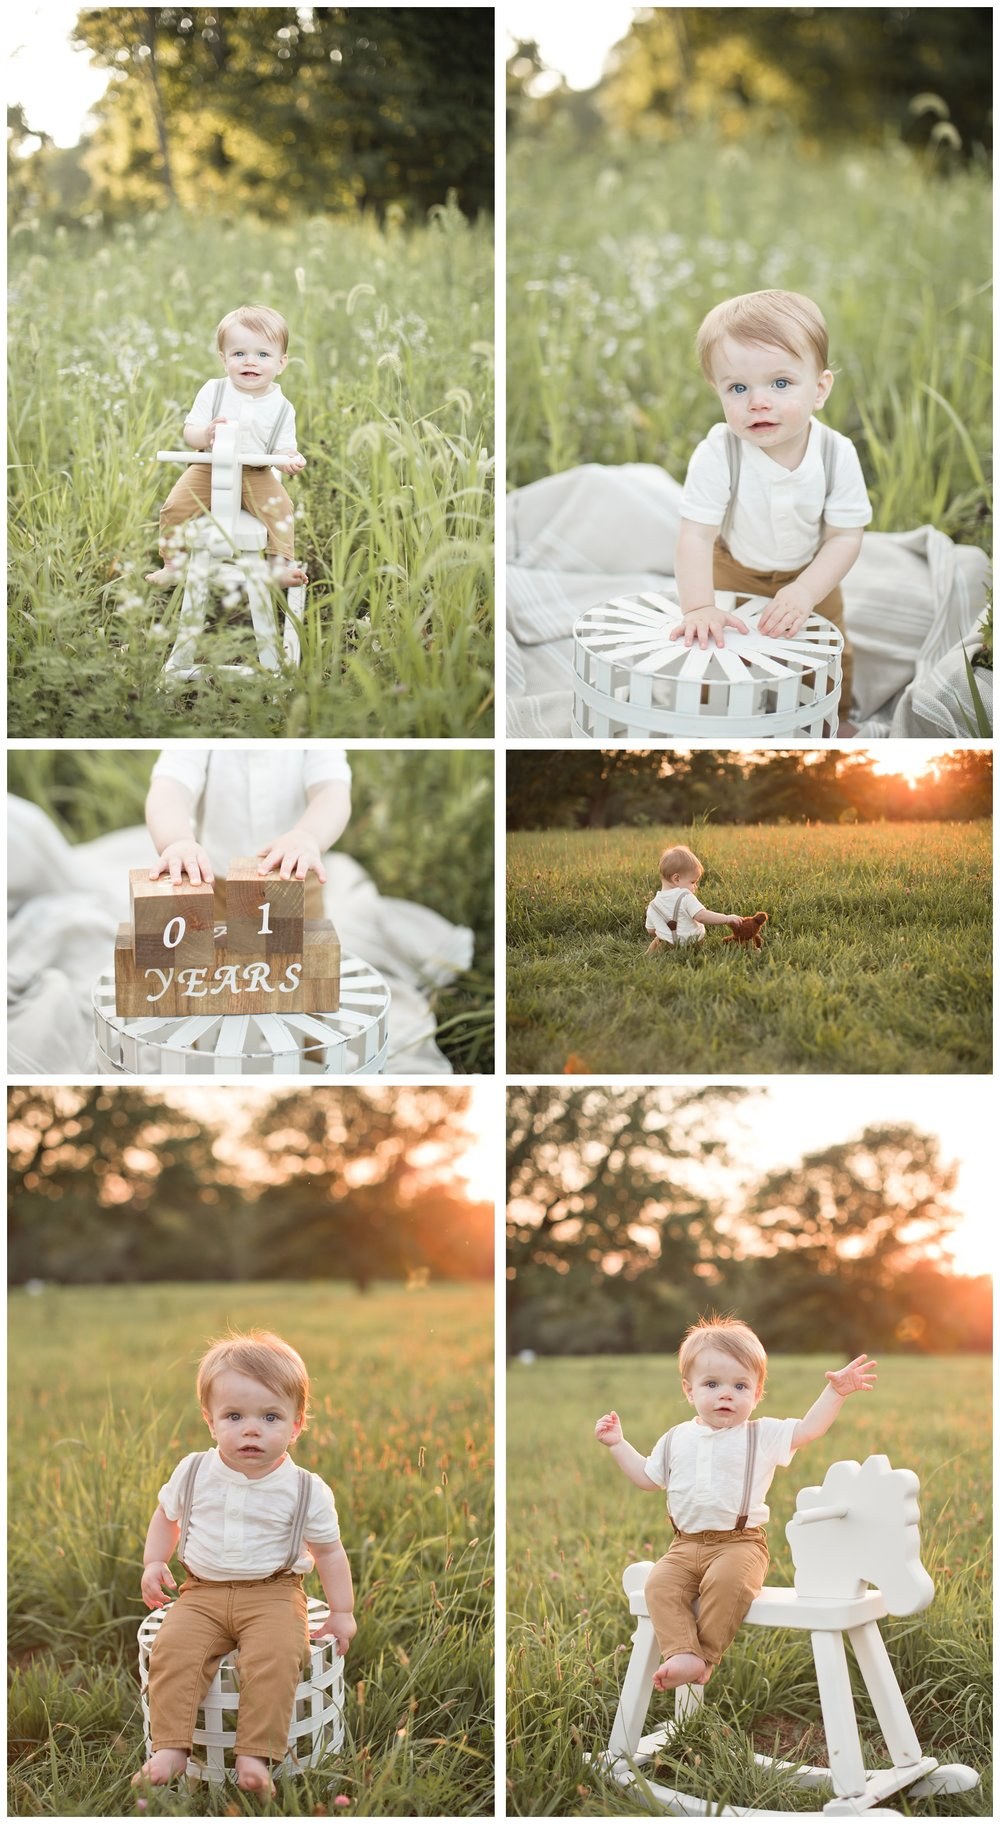 newcanaan-wavenypark-firstbirthdaysession-kristinwoodphotography